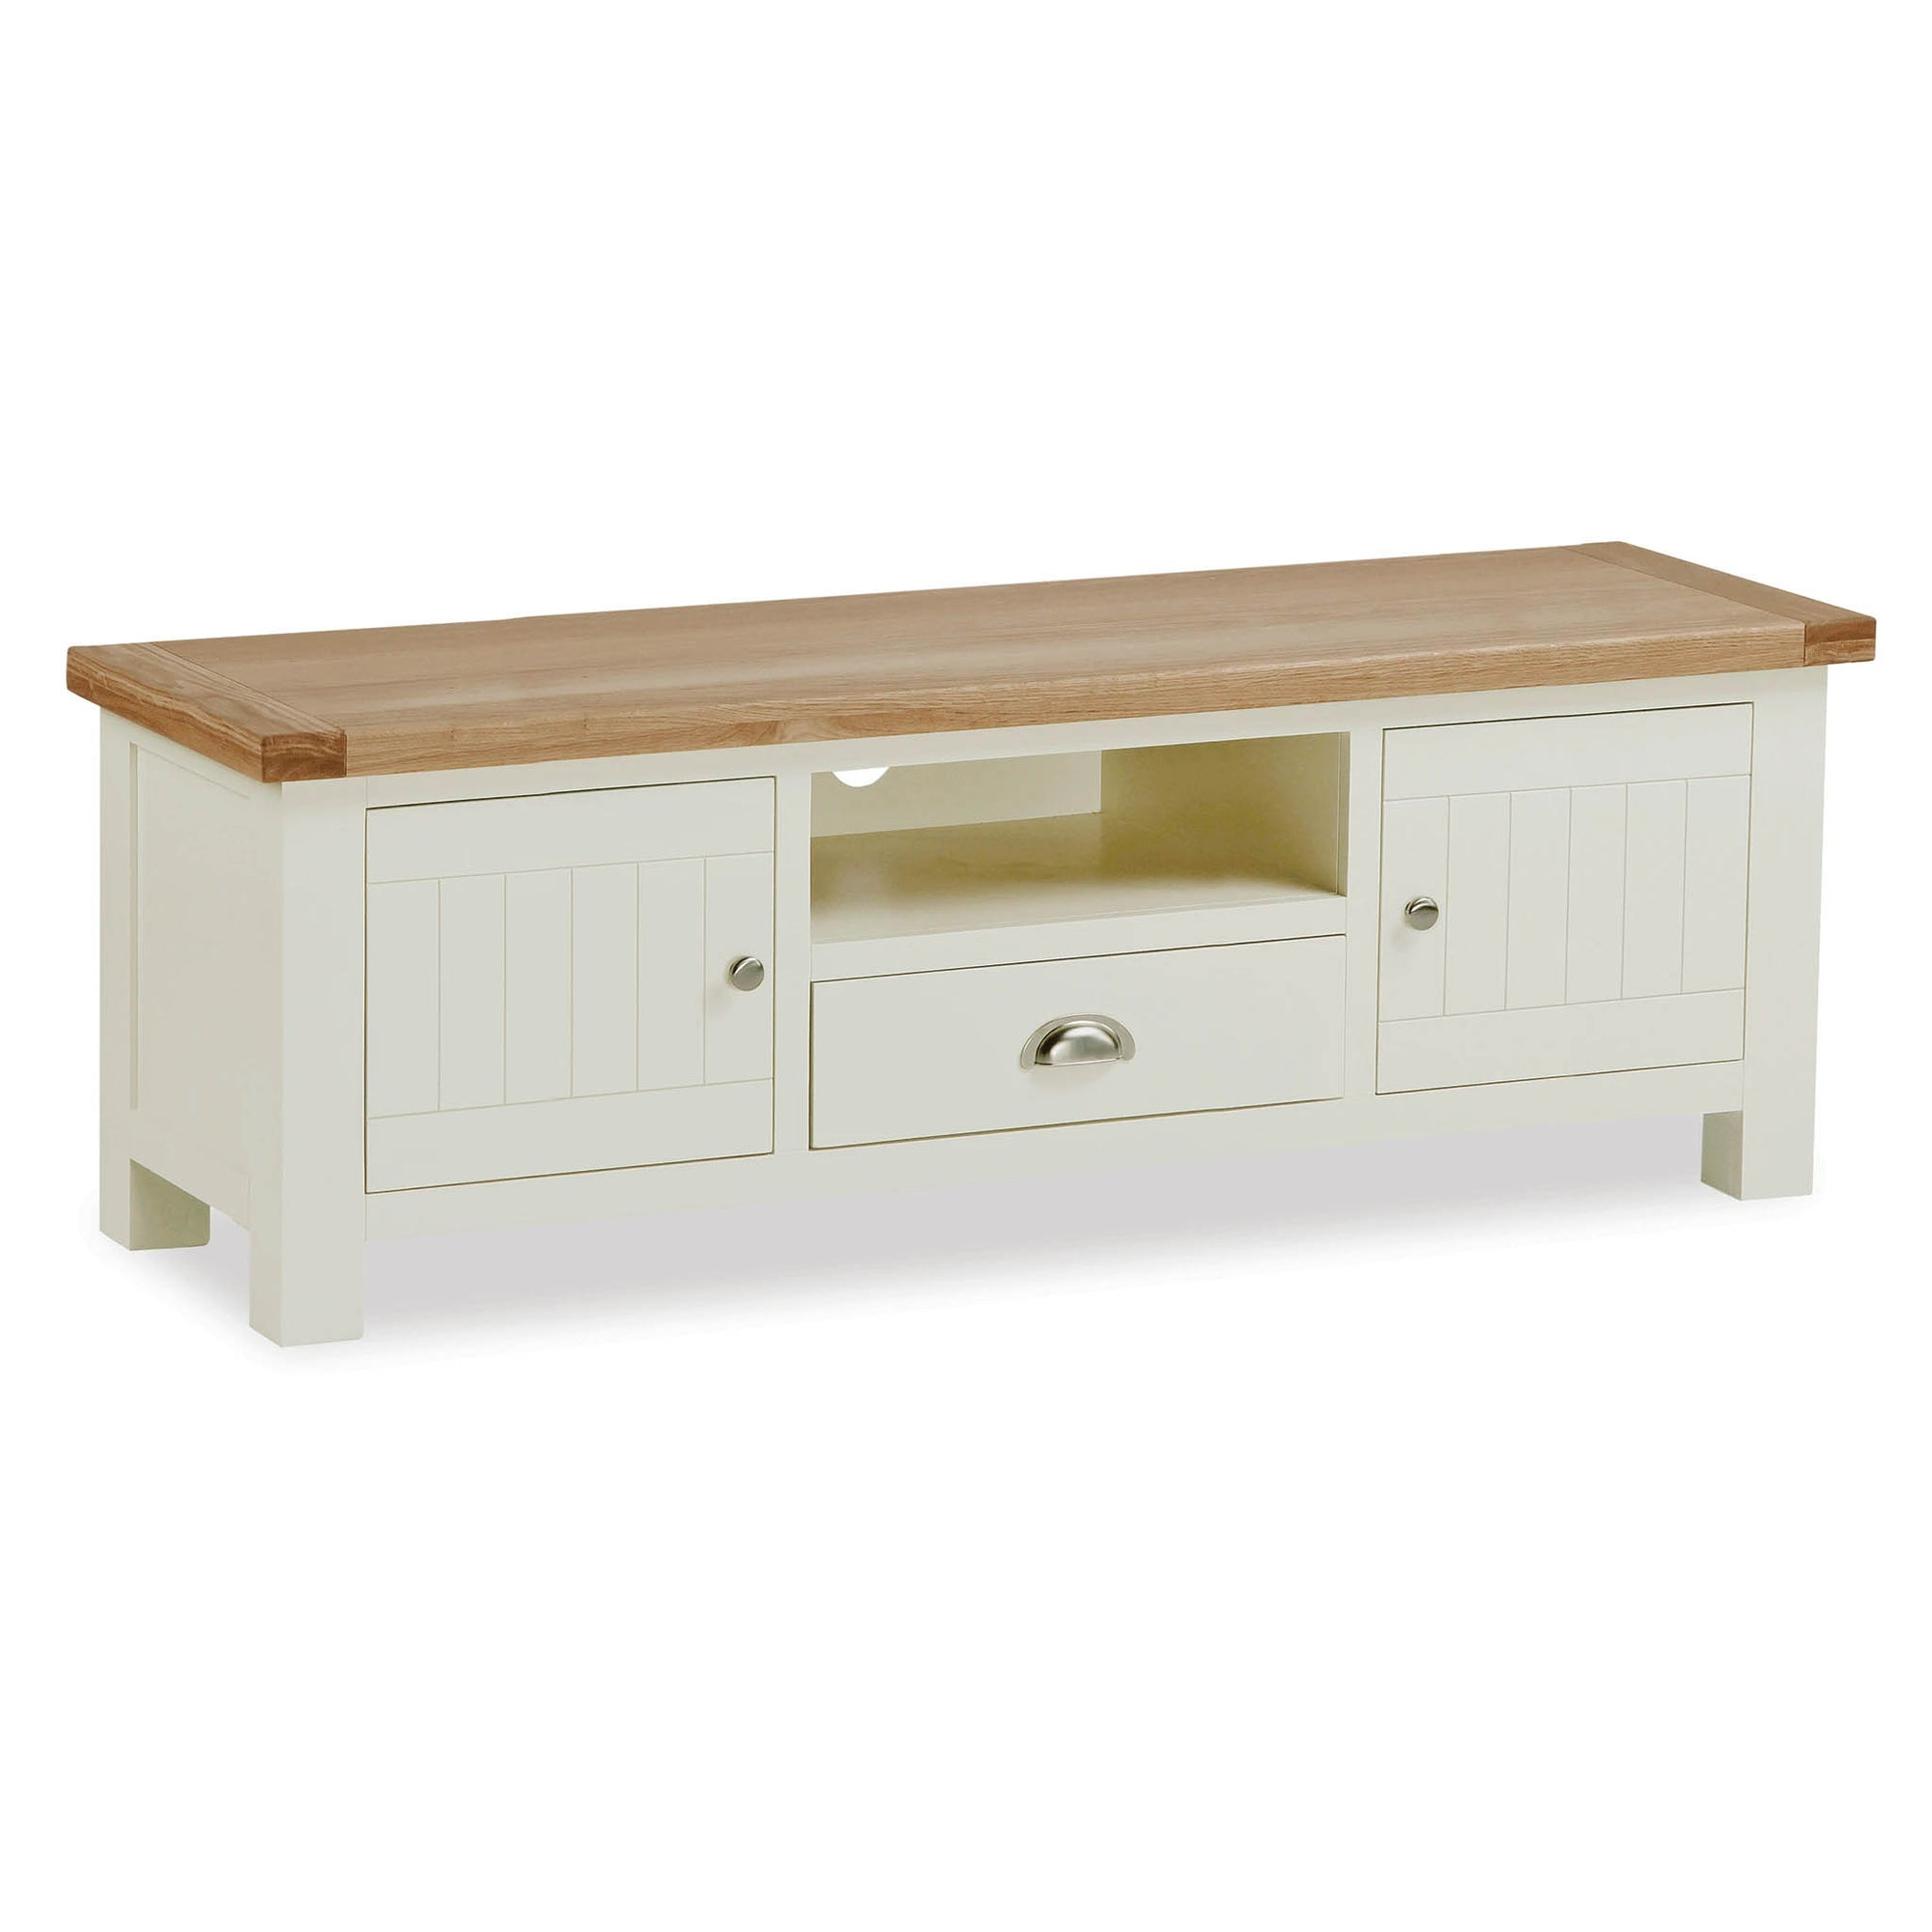 The Daymer Cream Painted 150cm Large TV Stand Storage Unit by Roseland Furniture